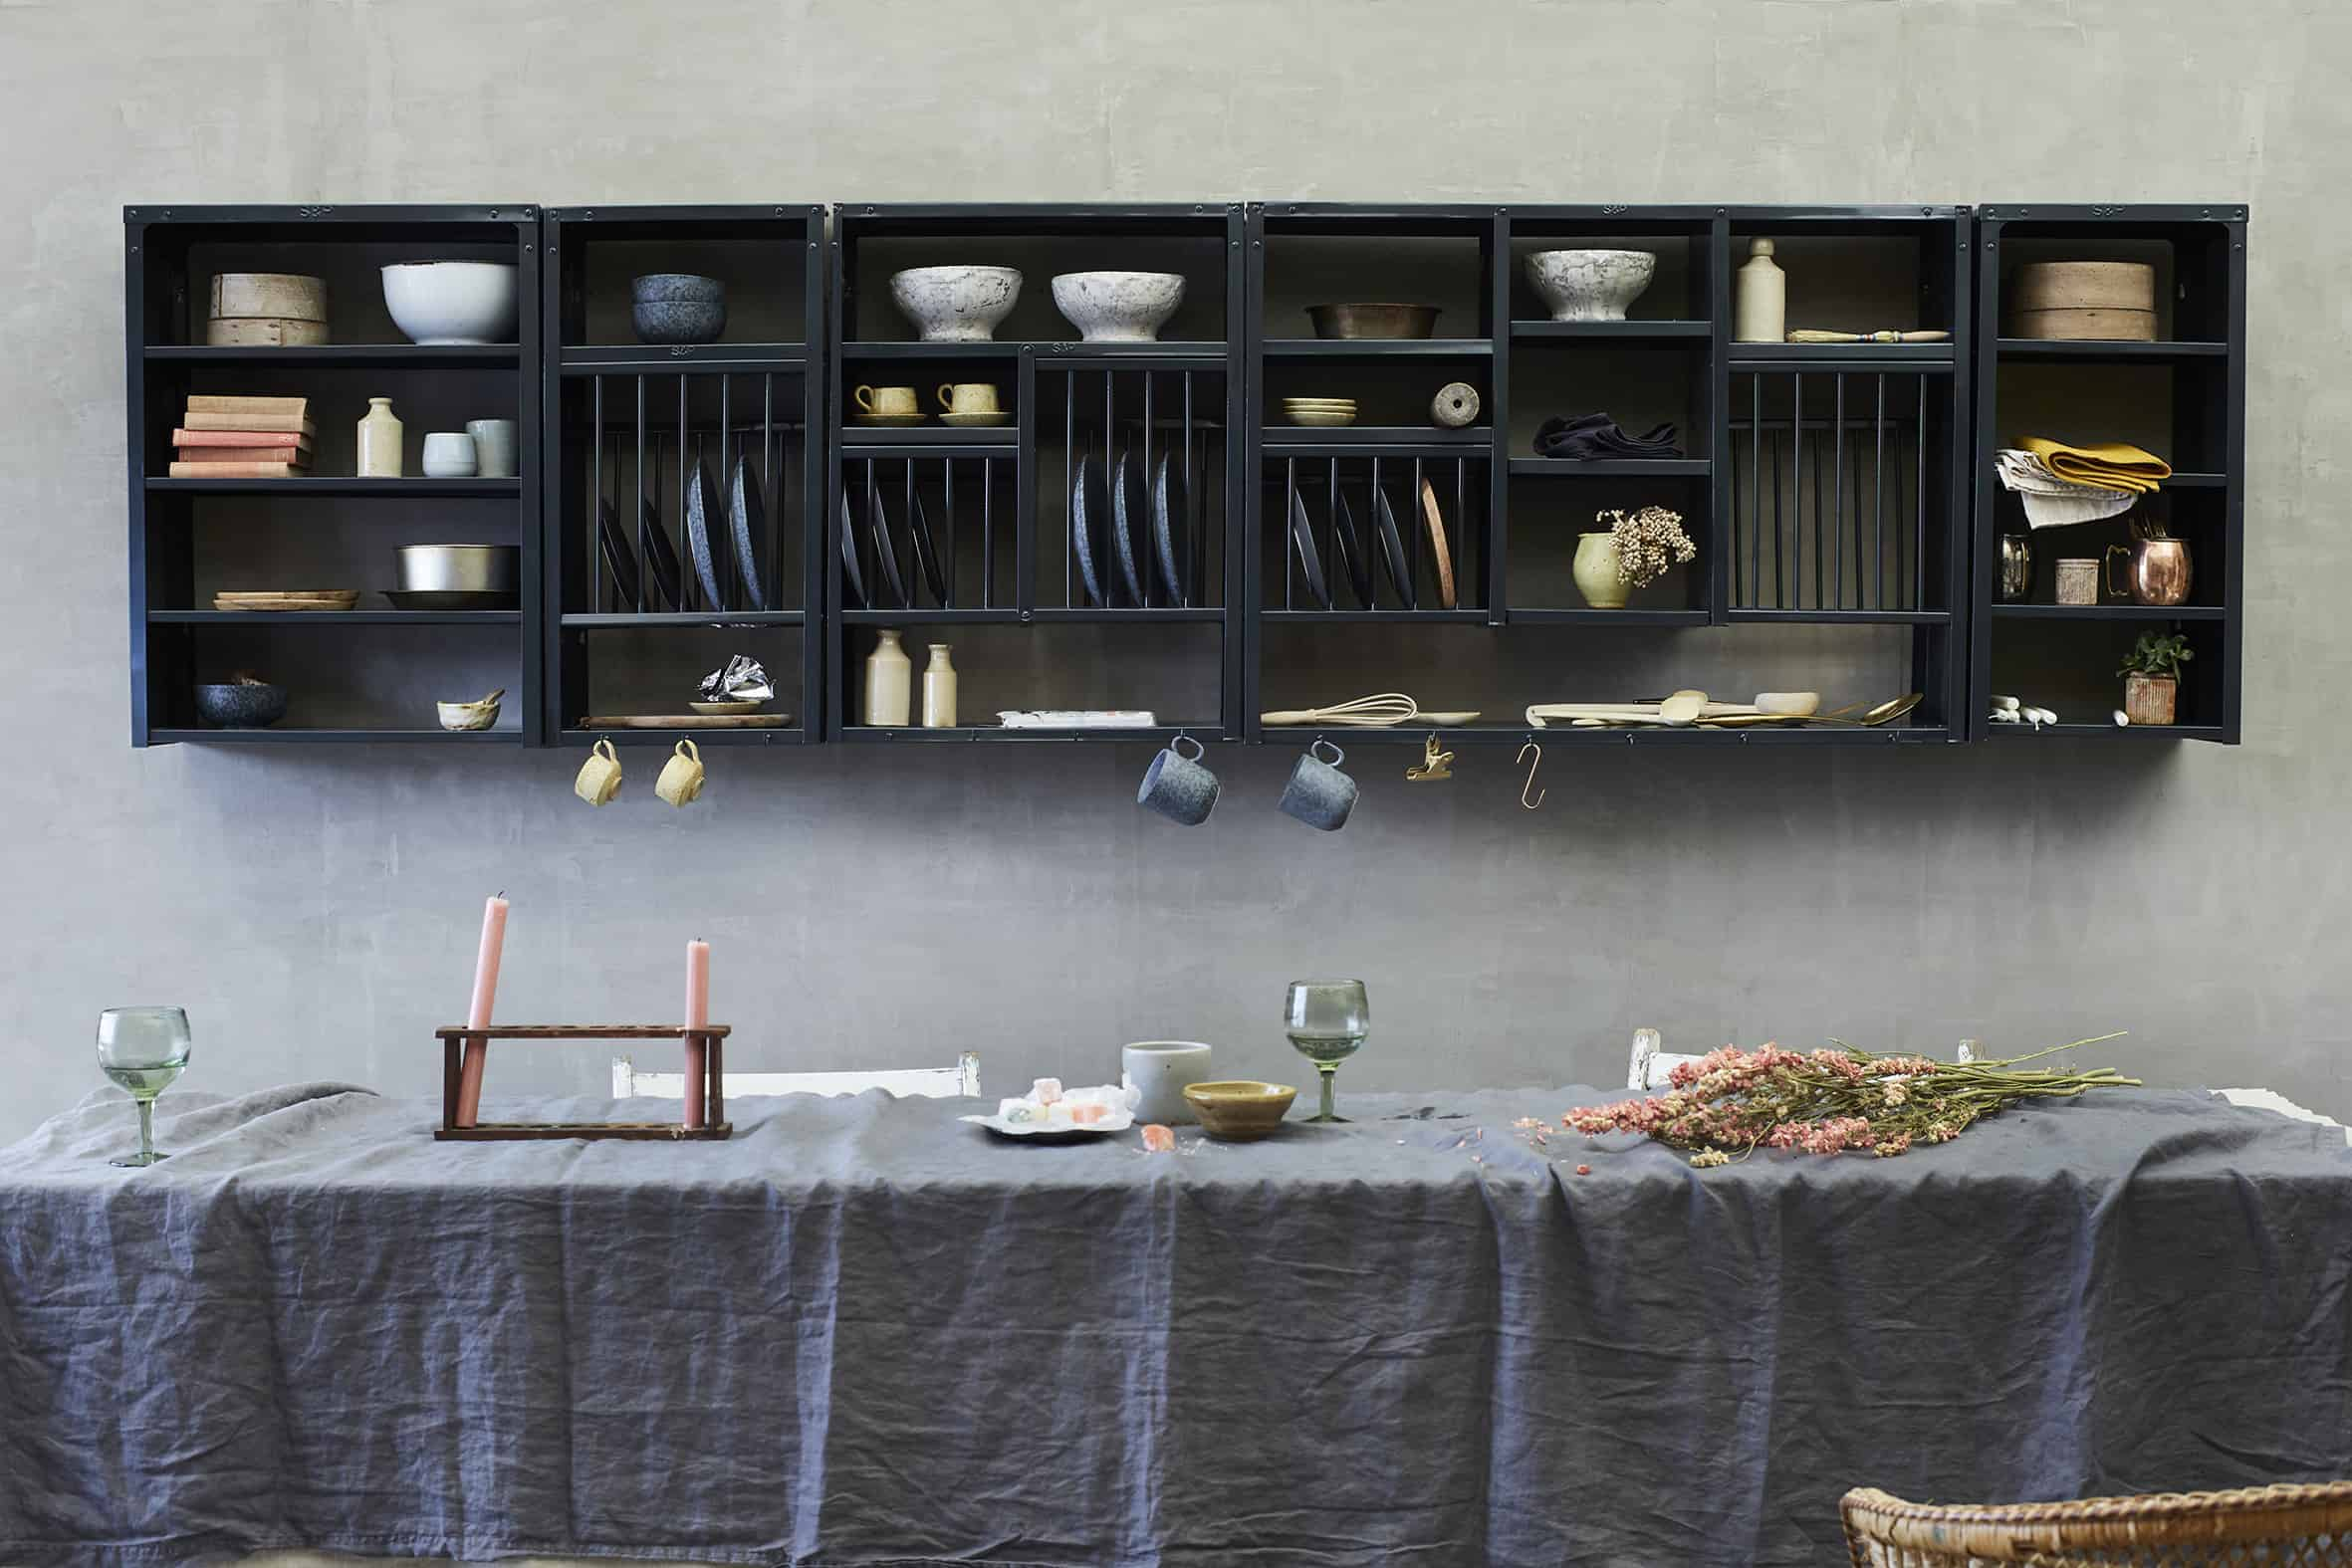 Anthracite Racks and Shelves